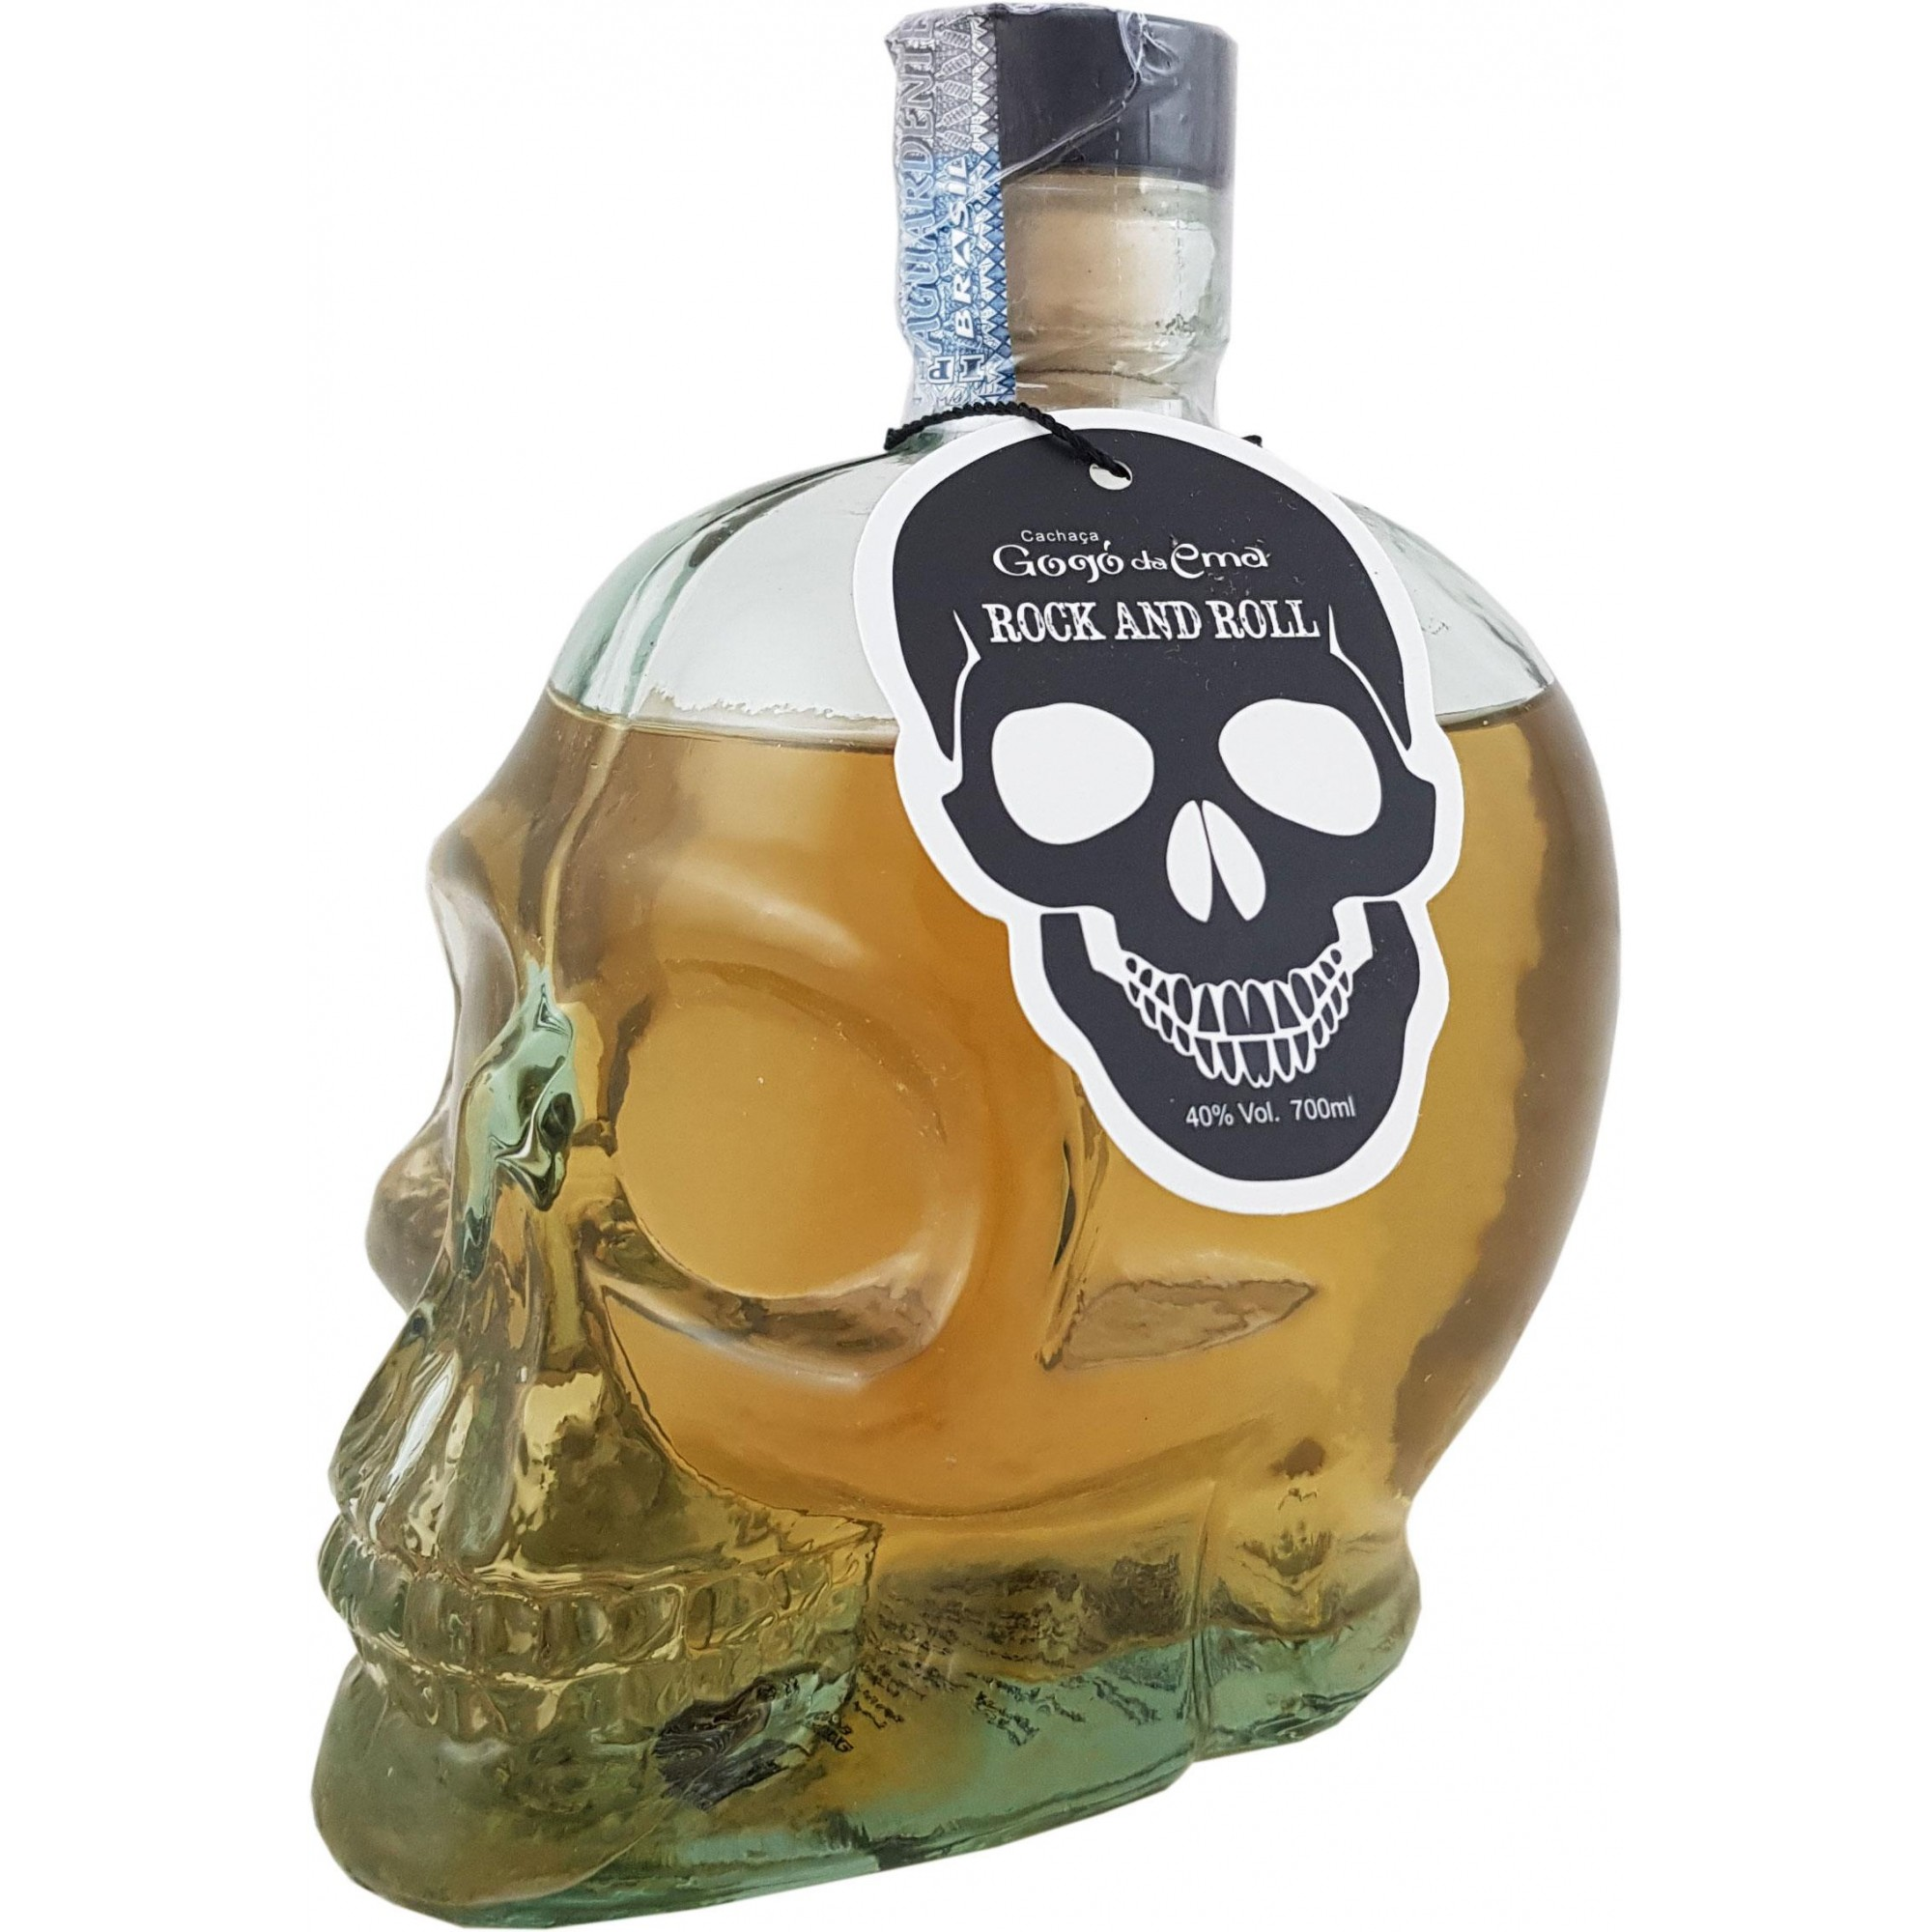 Cachaça Gogó da Ema Rock and Roll Premium 700ml